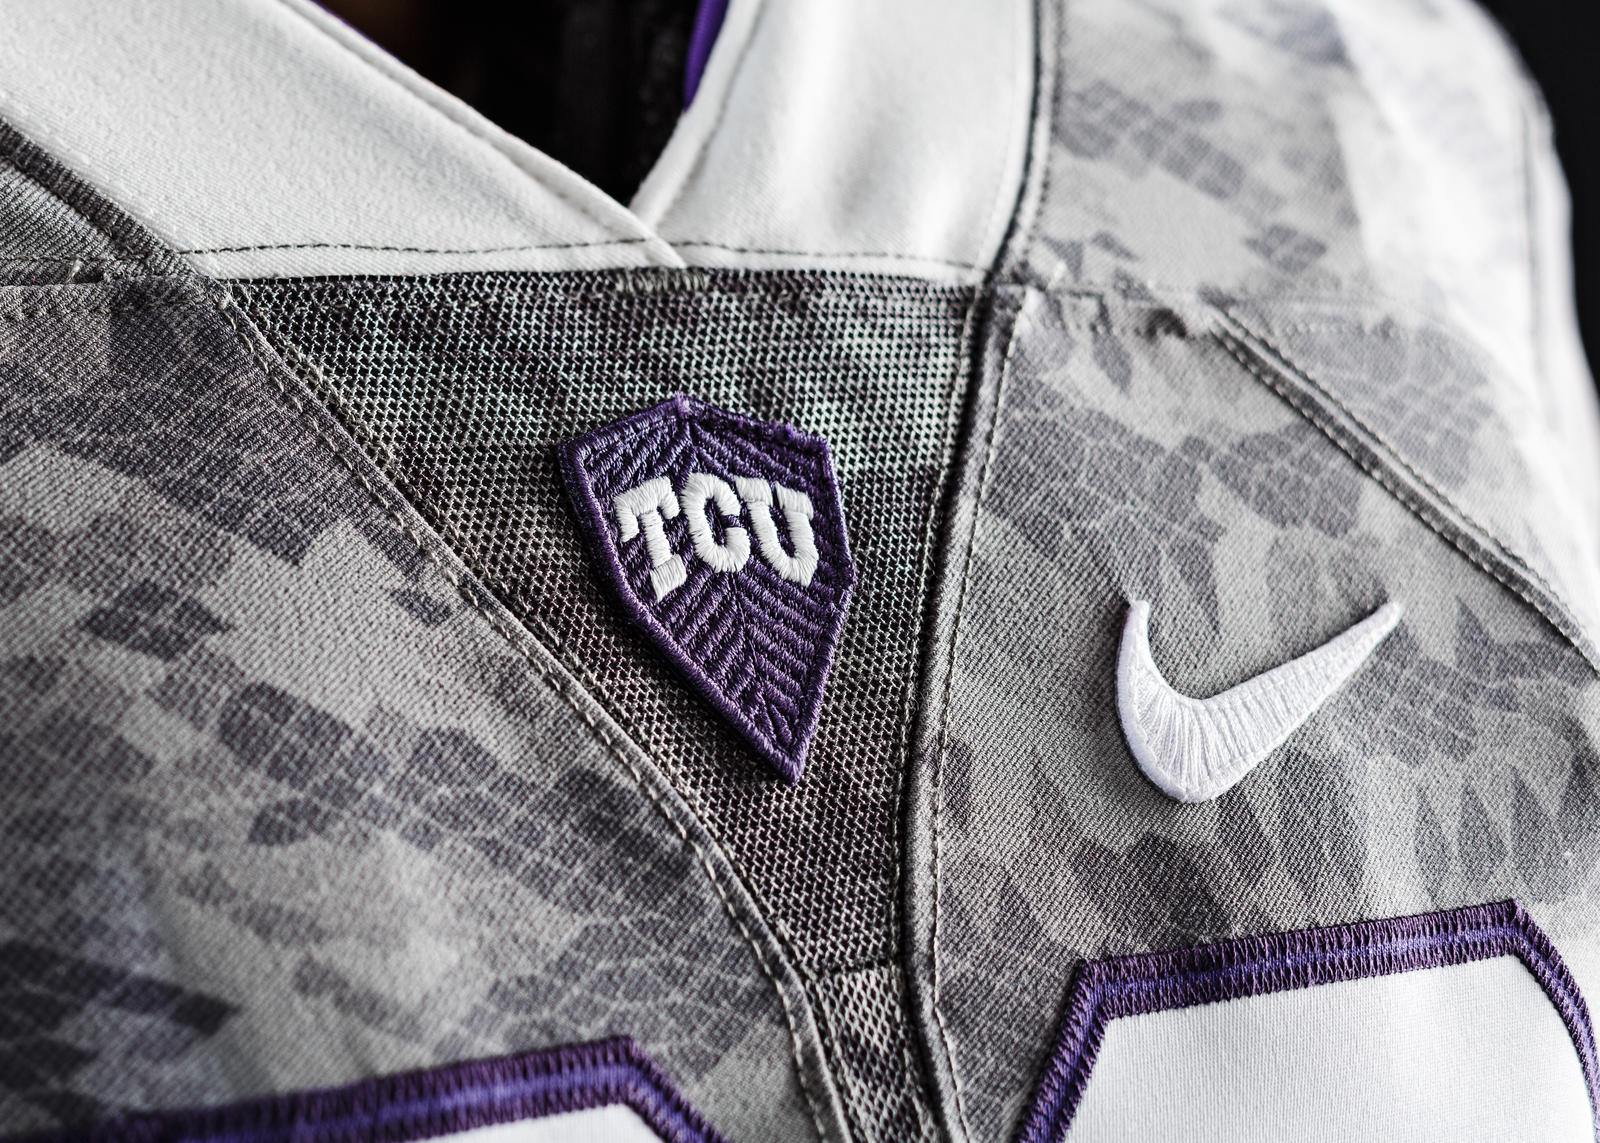 57d72351a College Sports: With TCU debuting 'scaly' uniforms, Horned Frogs know  recruits 'want to have swag' | SportsDay